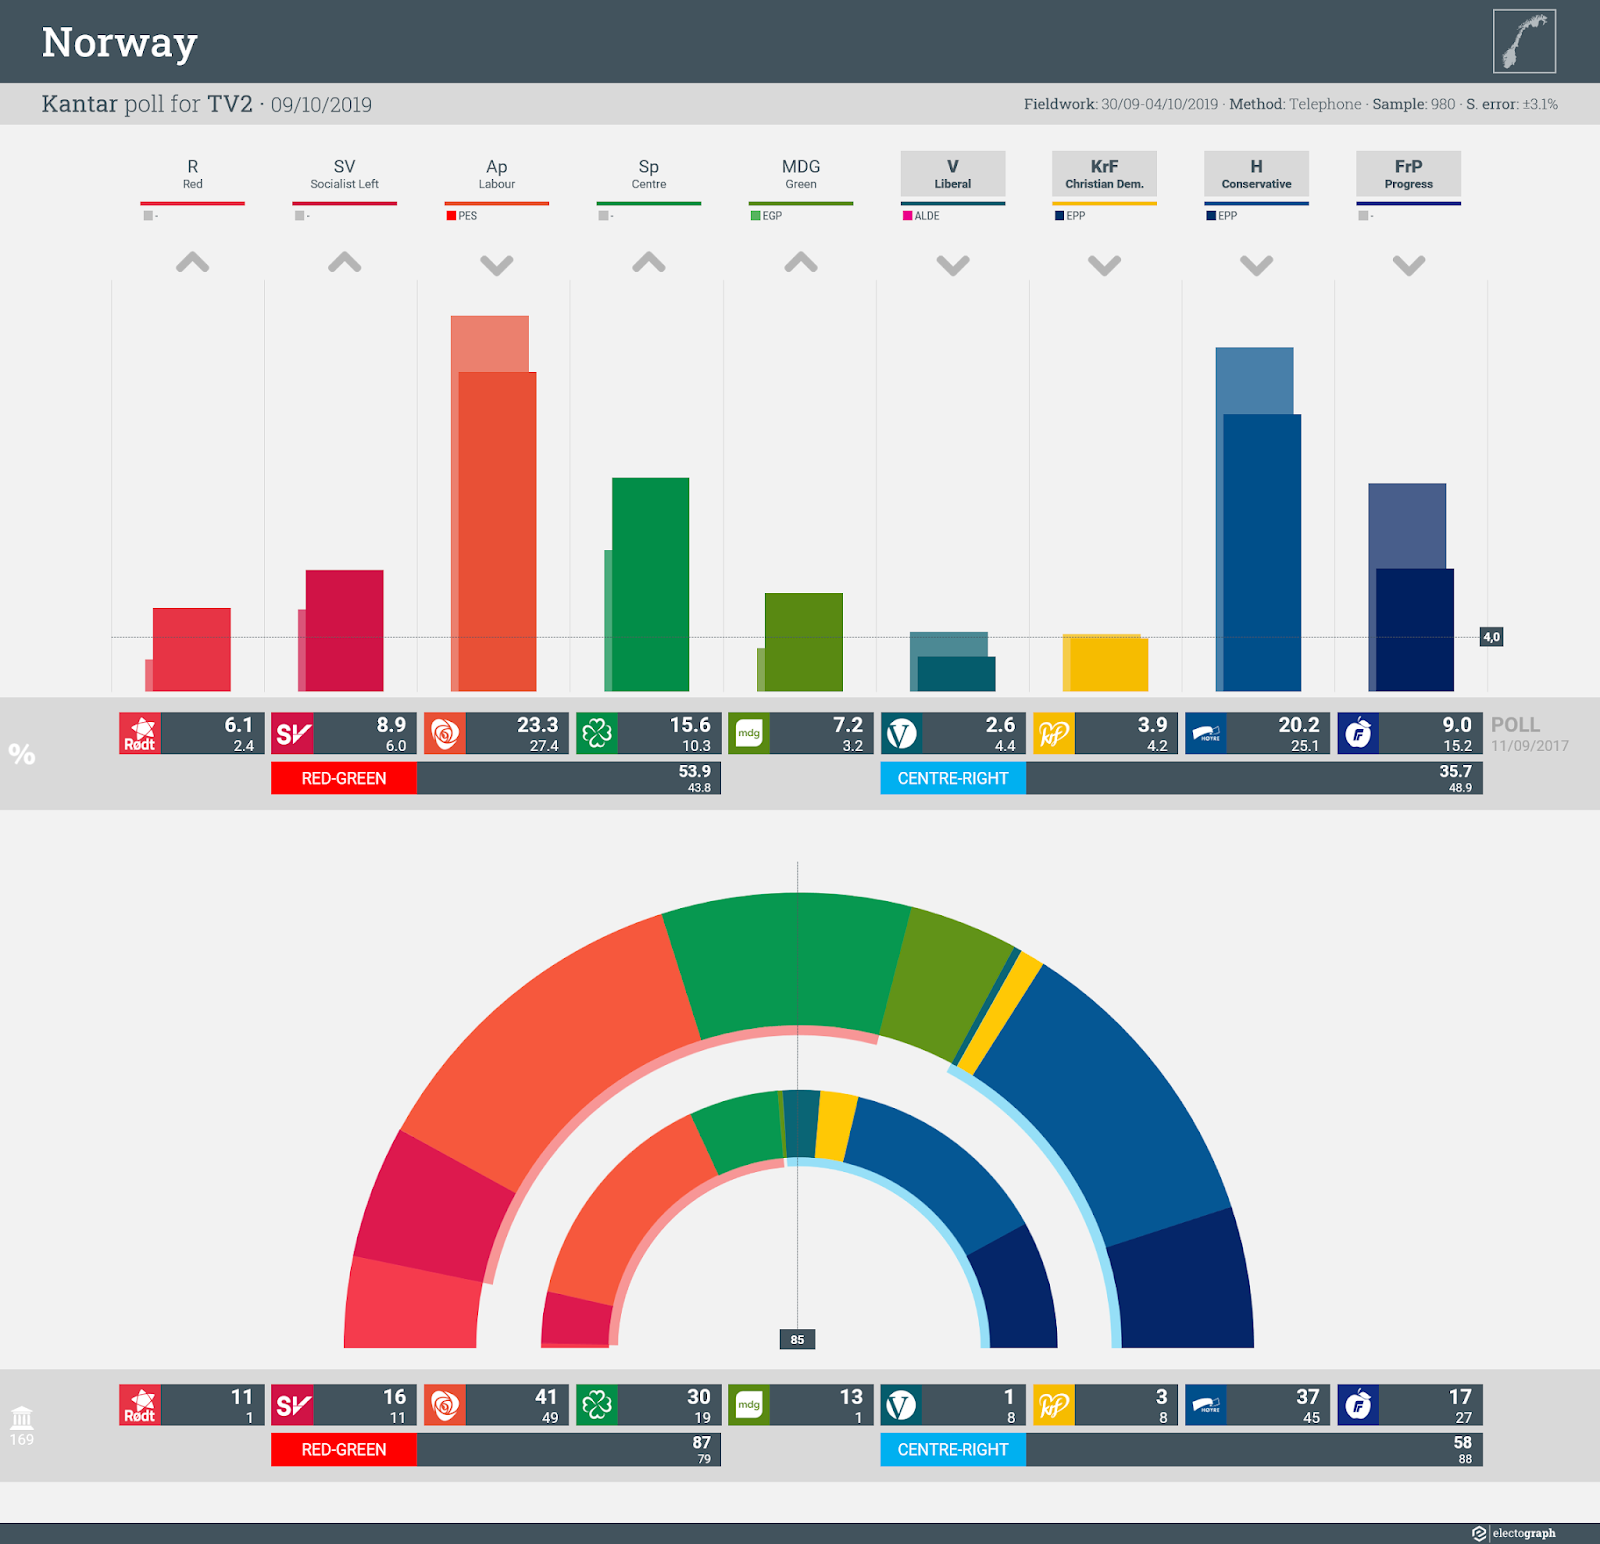 NORWAY: Kantar poll chart for TV2, 9 October 2019